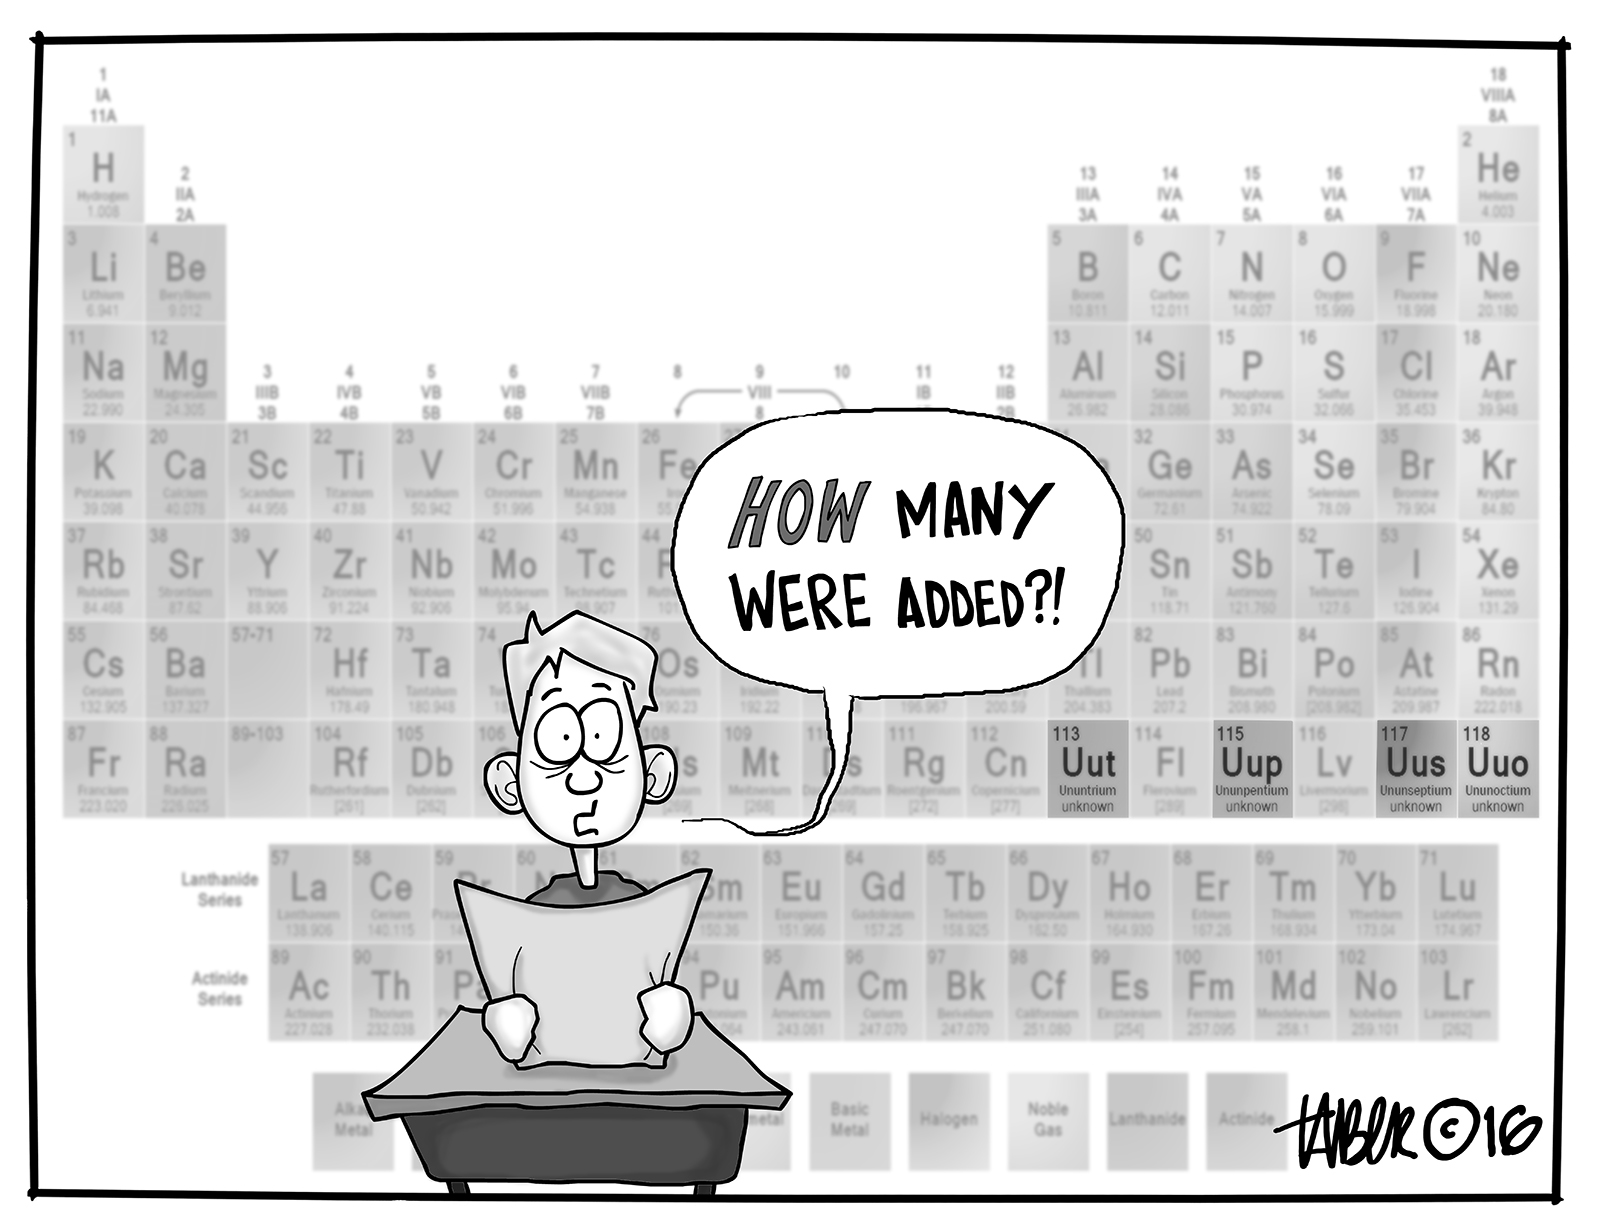 Four new elements added to the periodic table the cartoons of four new elements added to the periodic table the cartoons of forest taber urtaz Images